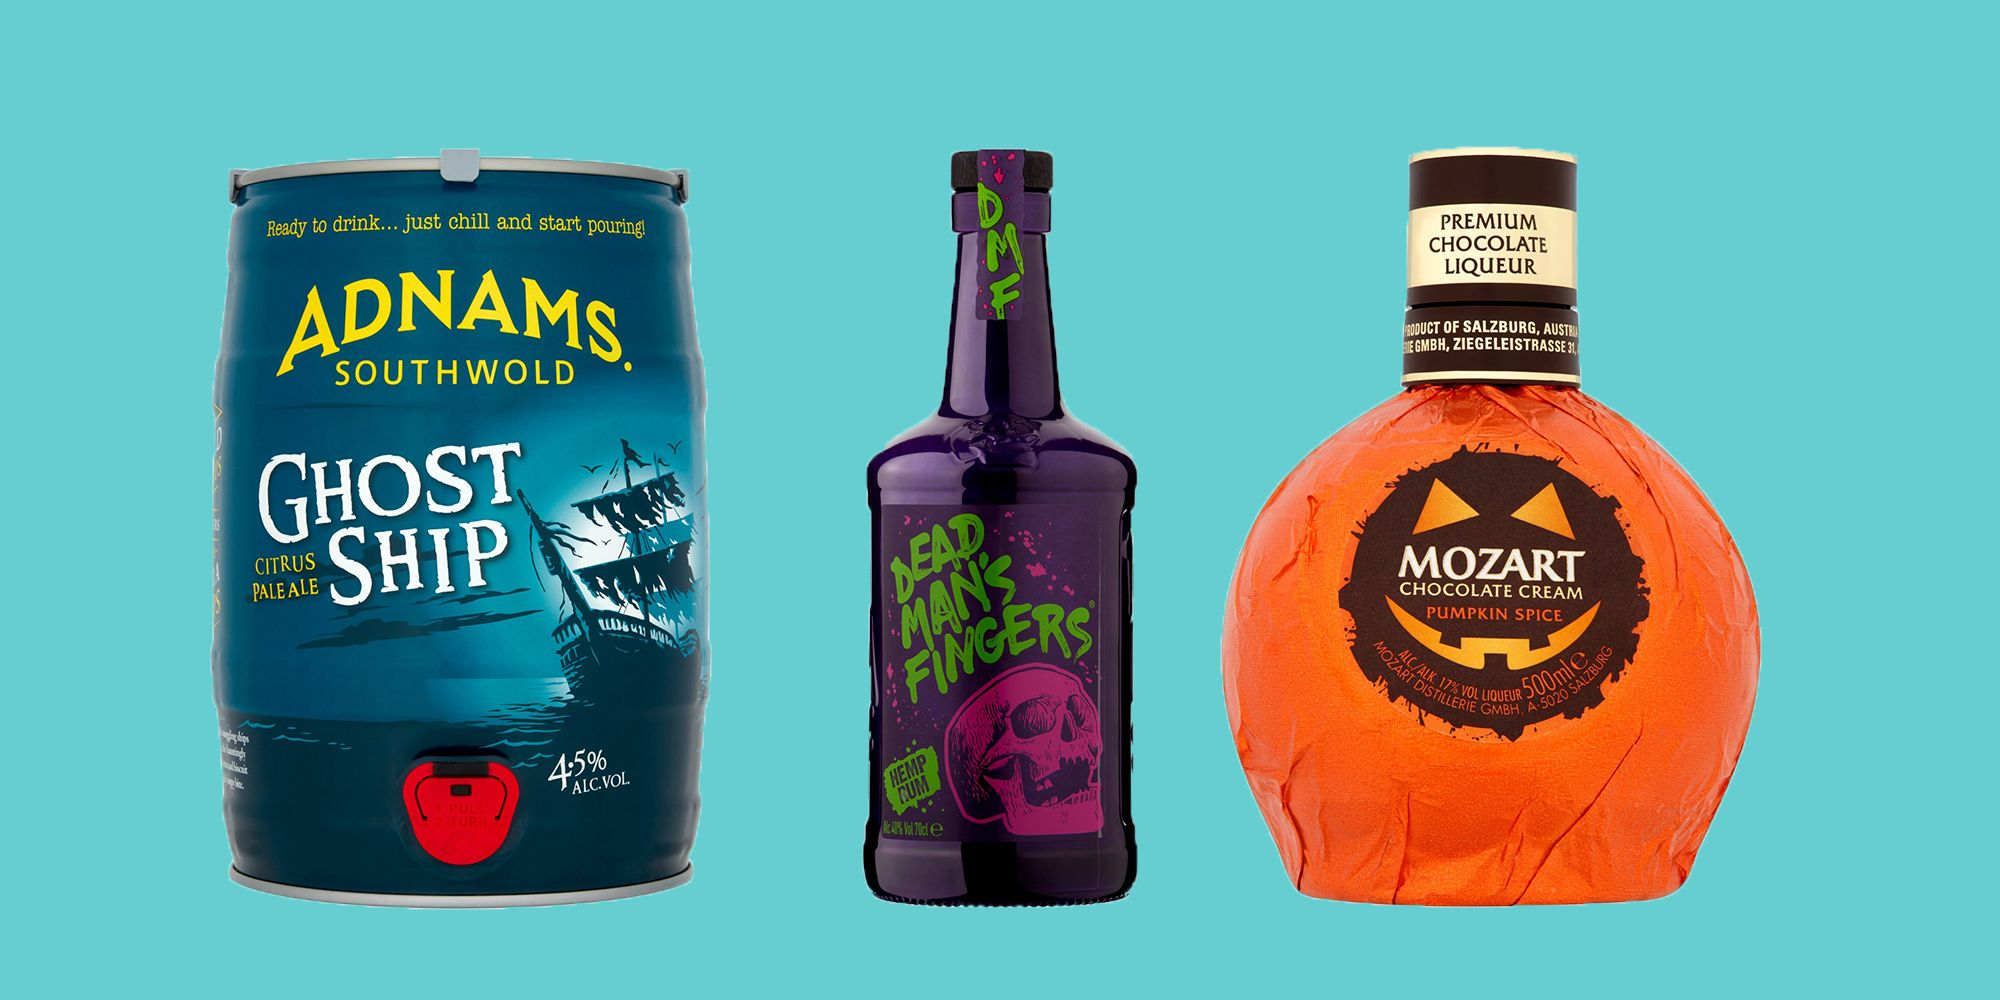 Ocado Has Launched A Halloween Booze Line To Make All Your Halloween Party Dreams Come True